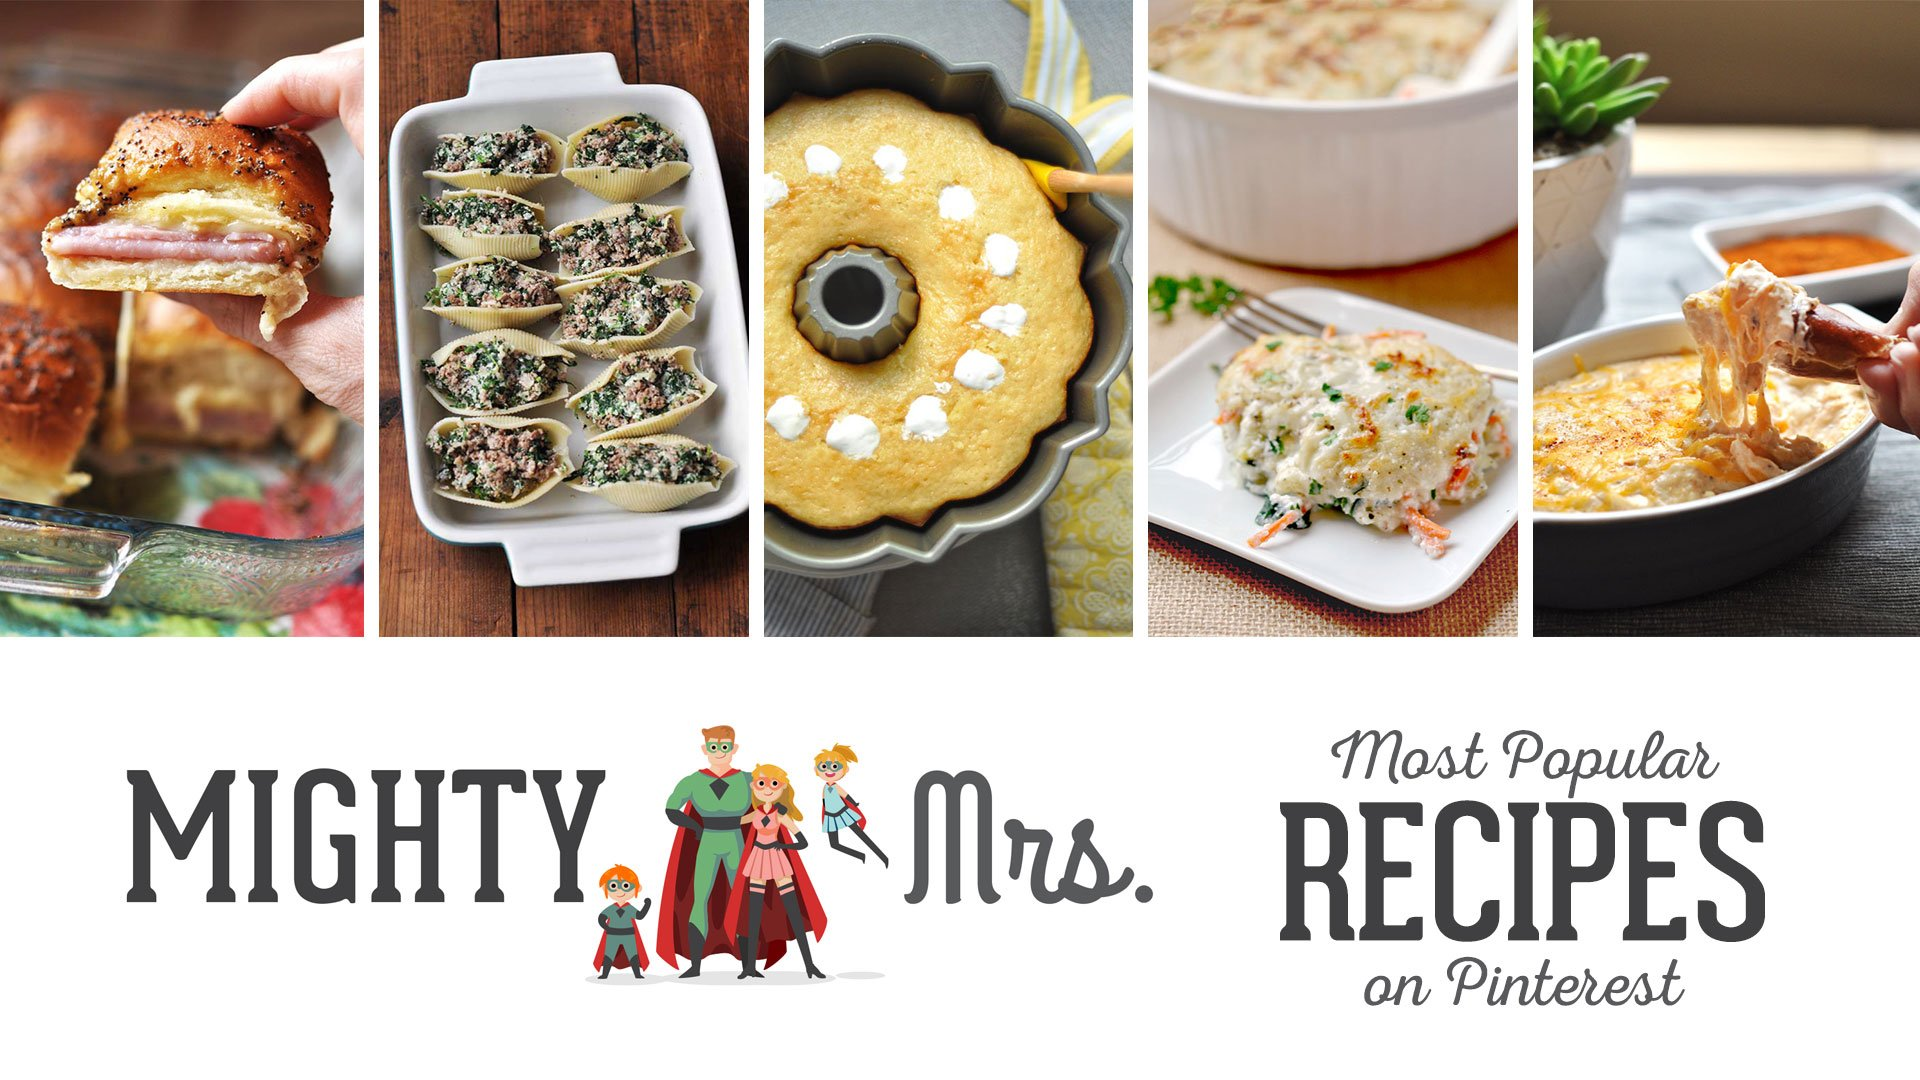 Most Popular Recipes on Pinterest